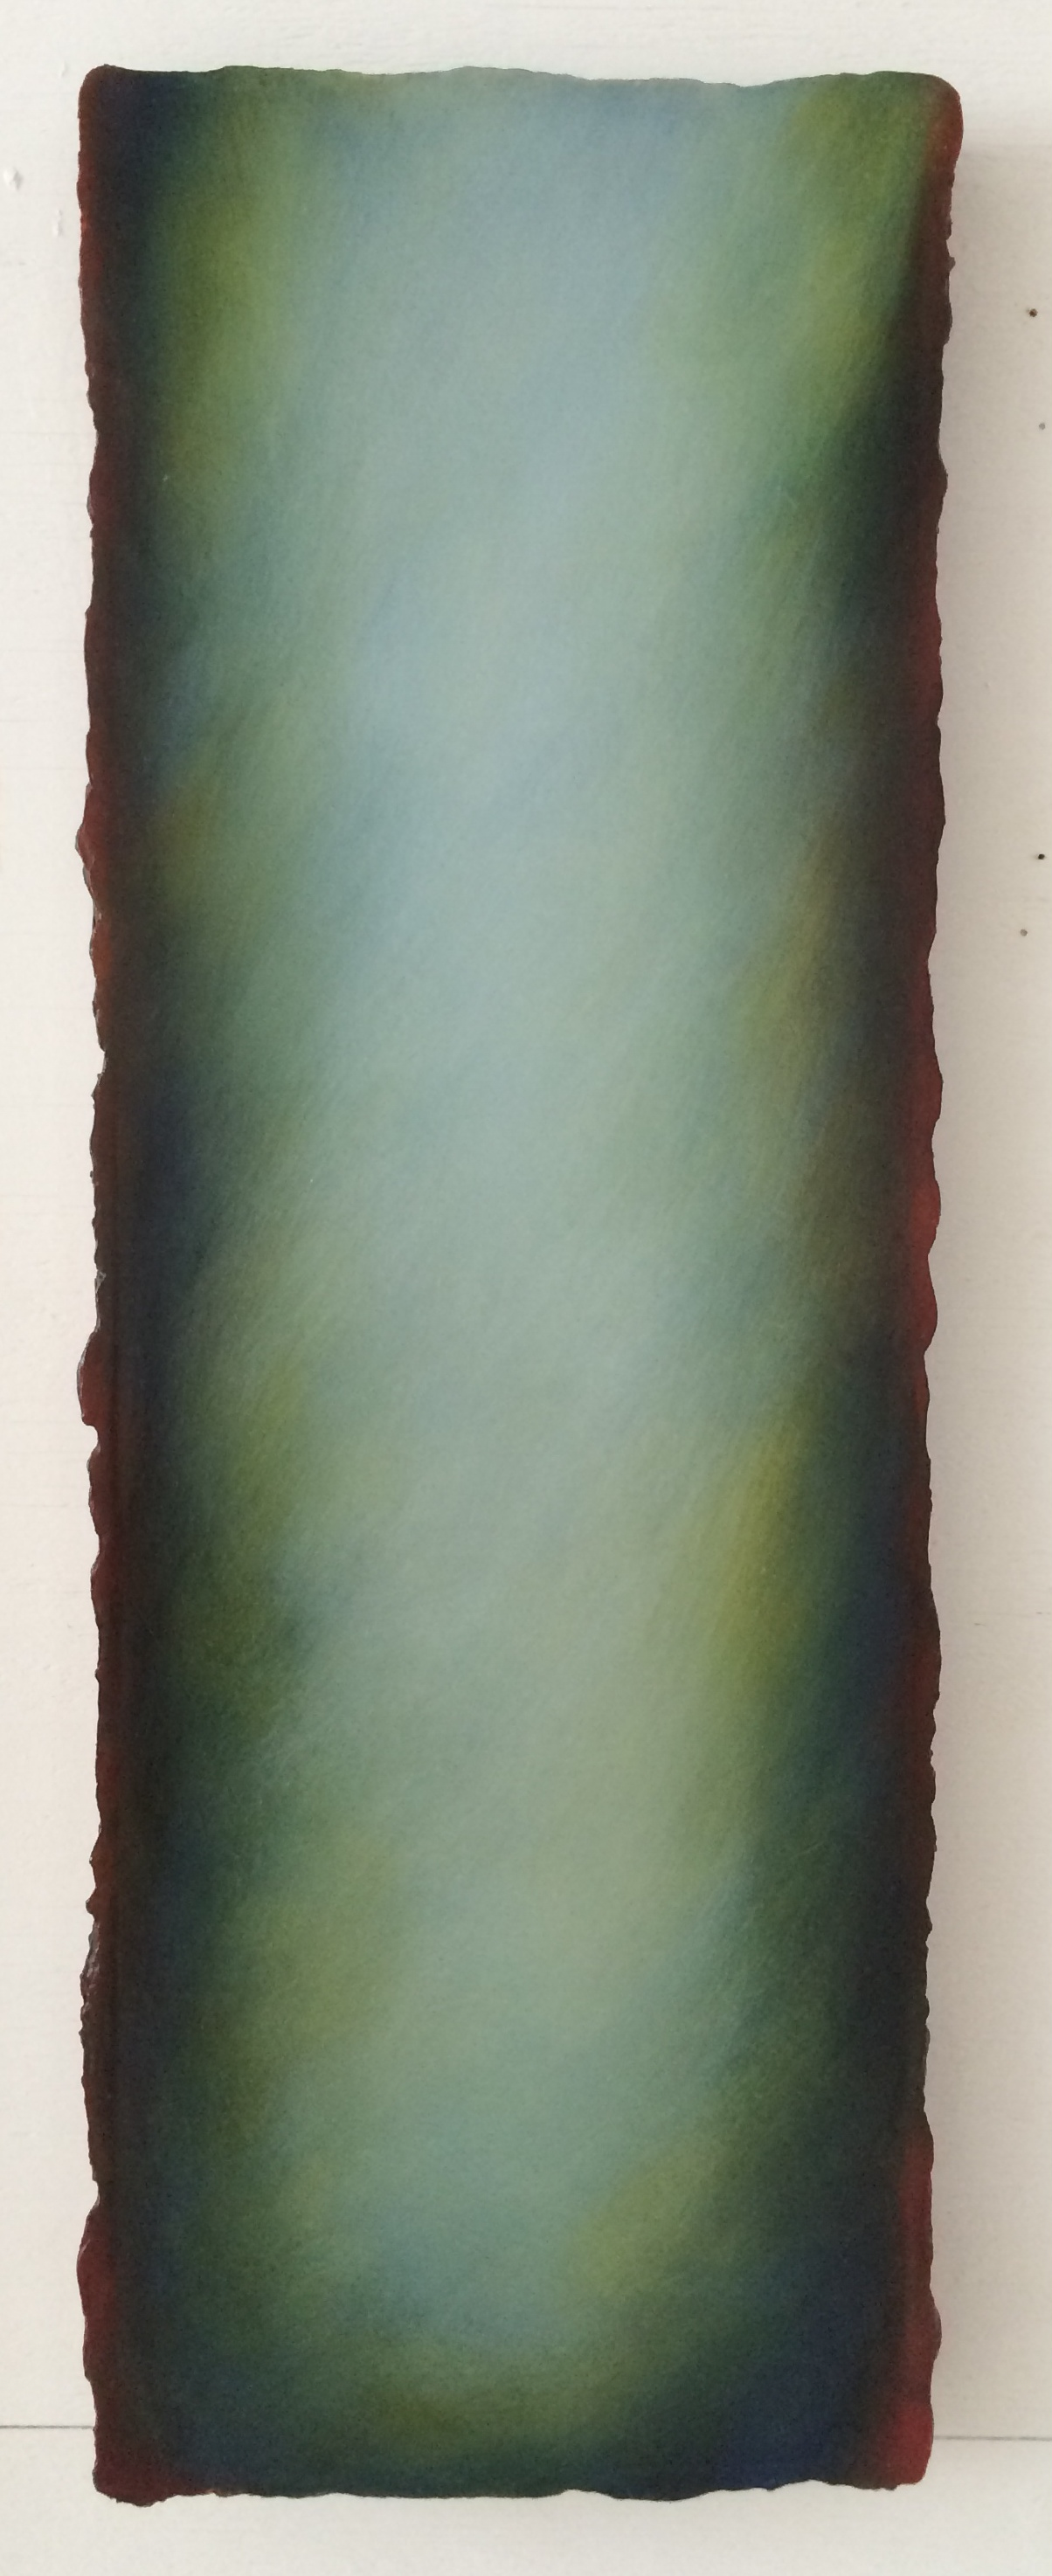 #VR-B12 Blue/Green,  Oil on Canvas on Gesso-plaster Ground, 13 x 38